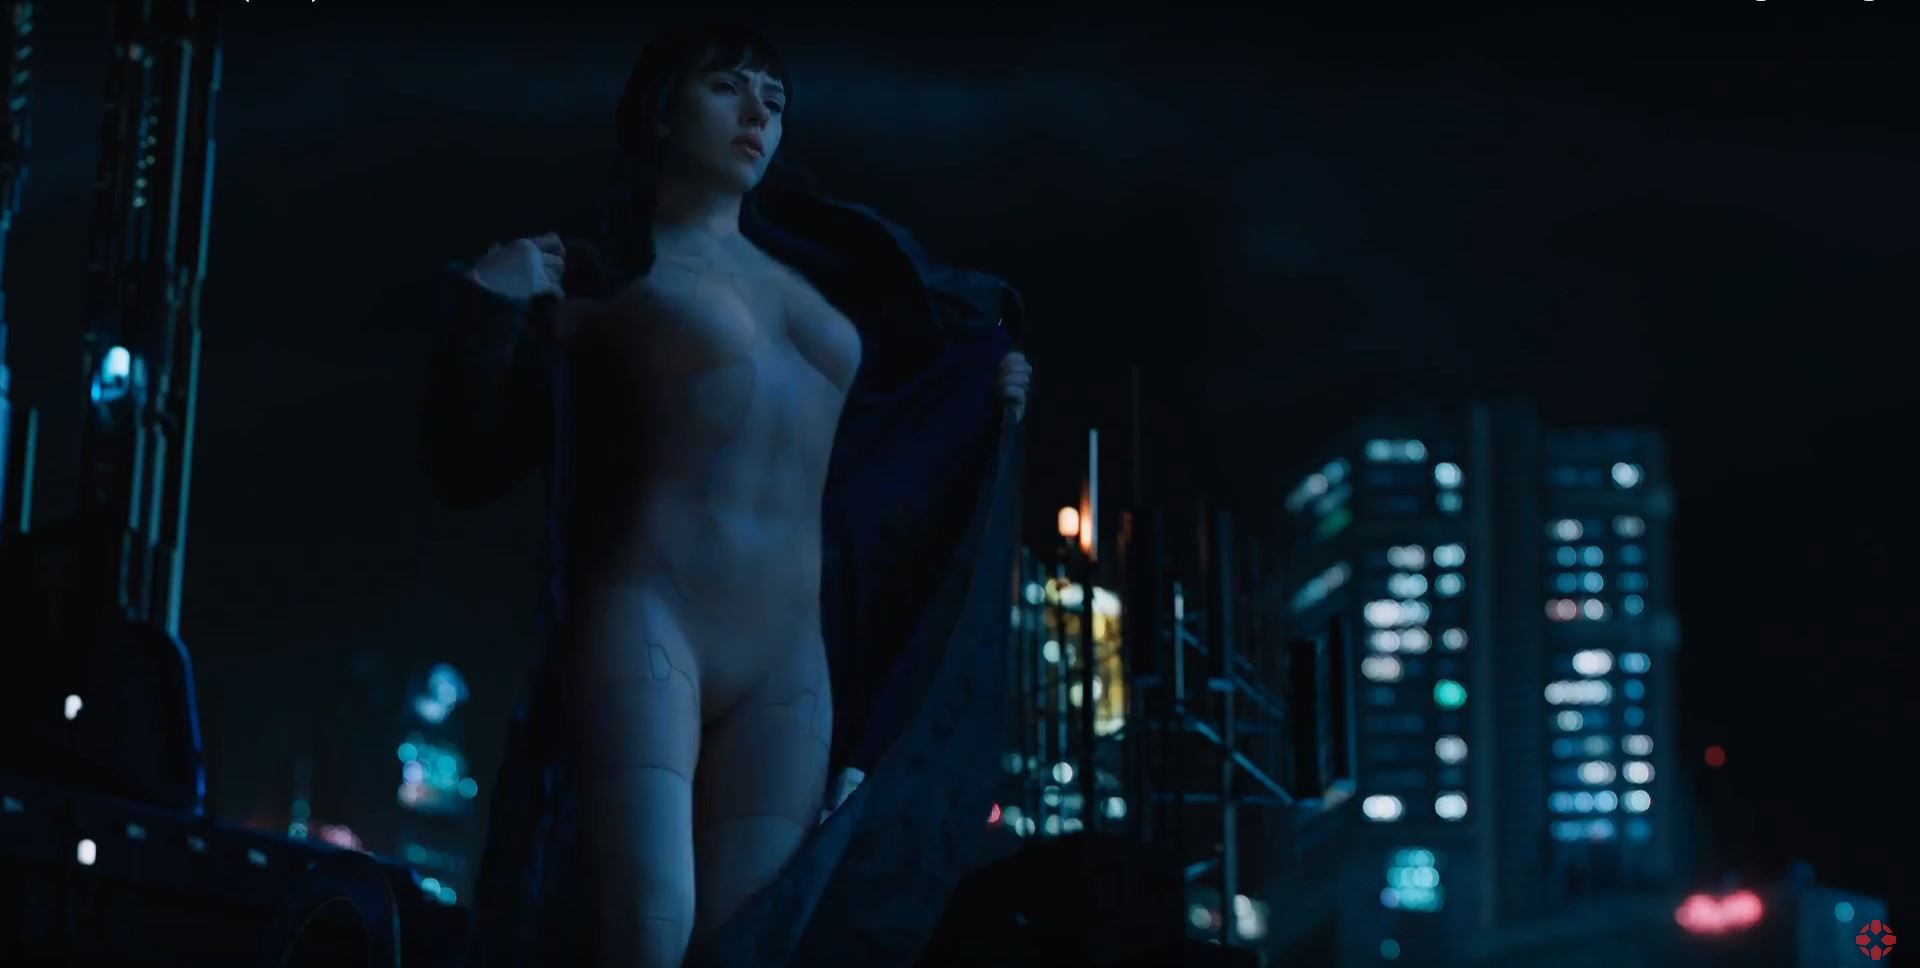 Major (Scarlett Johansson) ready for action - Ghost In The Shell